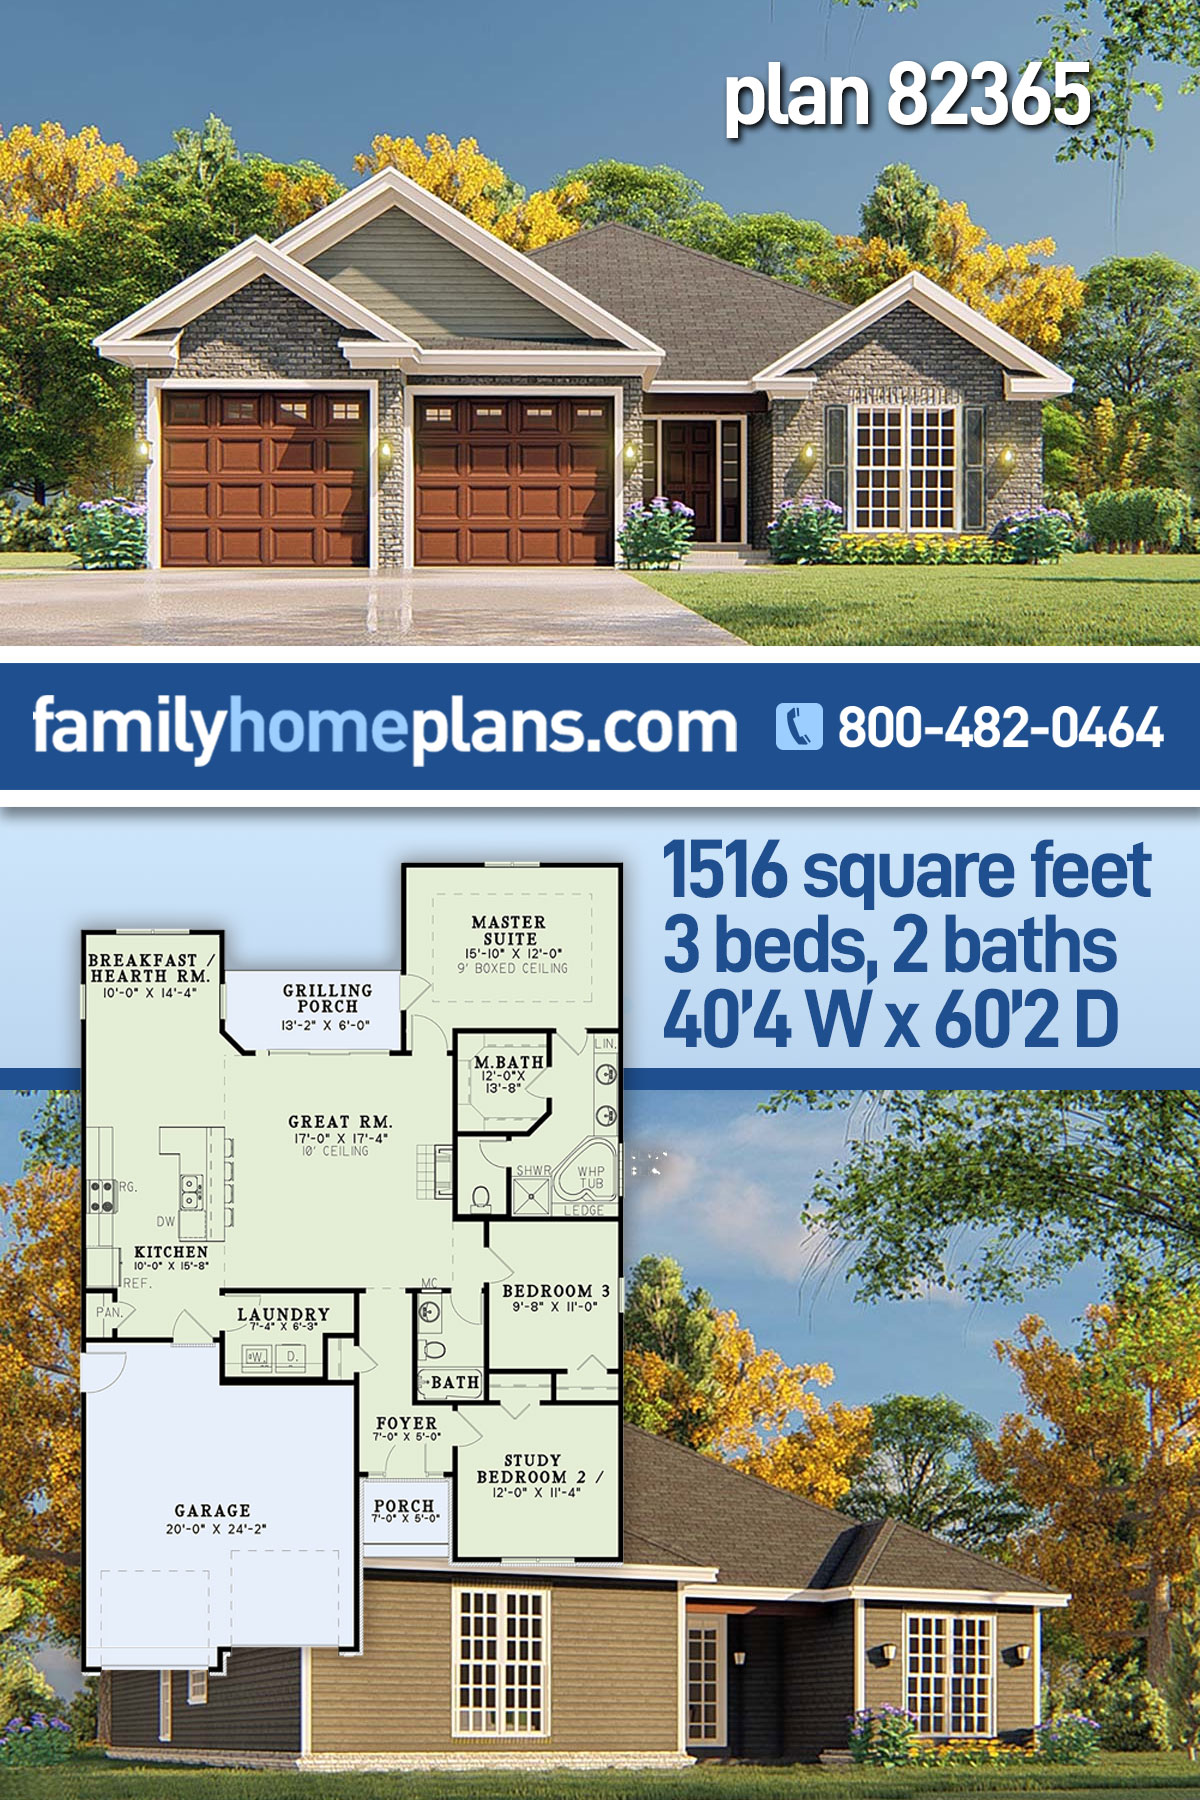 Traditional House Plan 82365 with 3 Beds, 2 Baths, 2 Car Garage